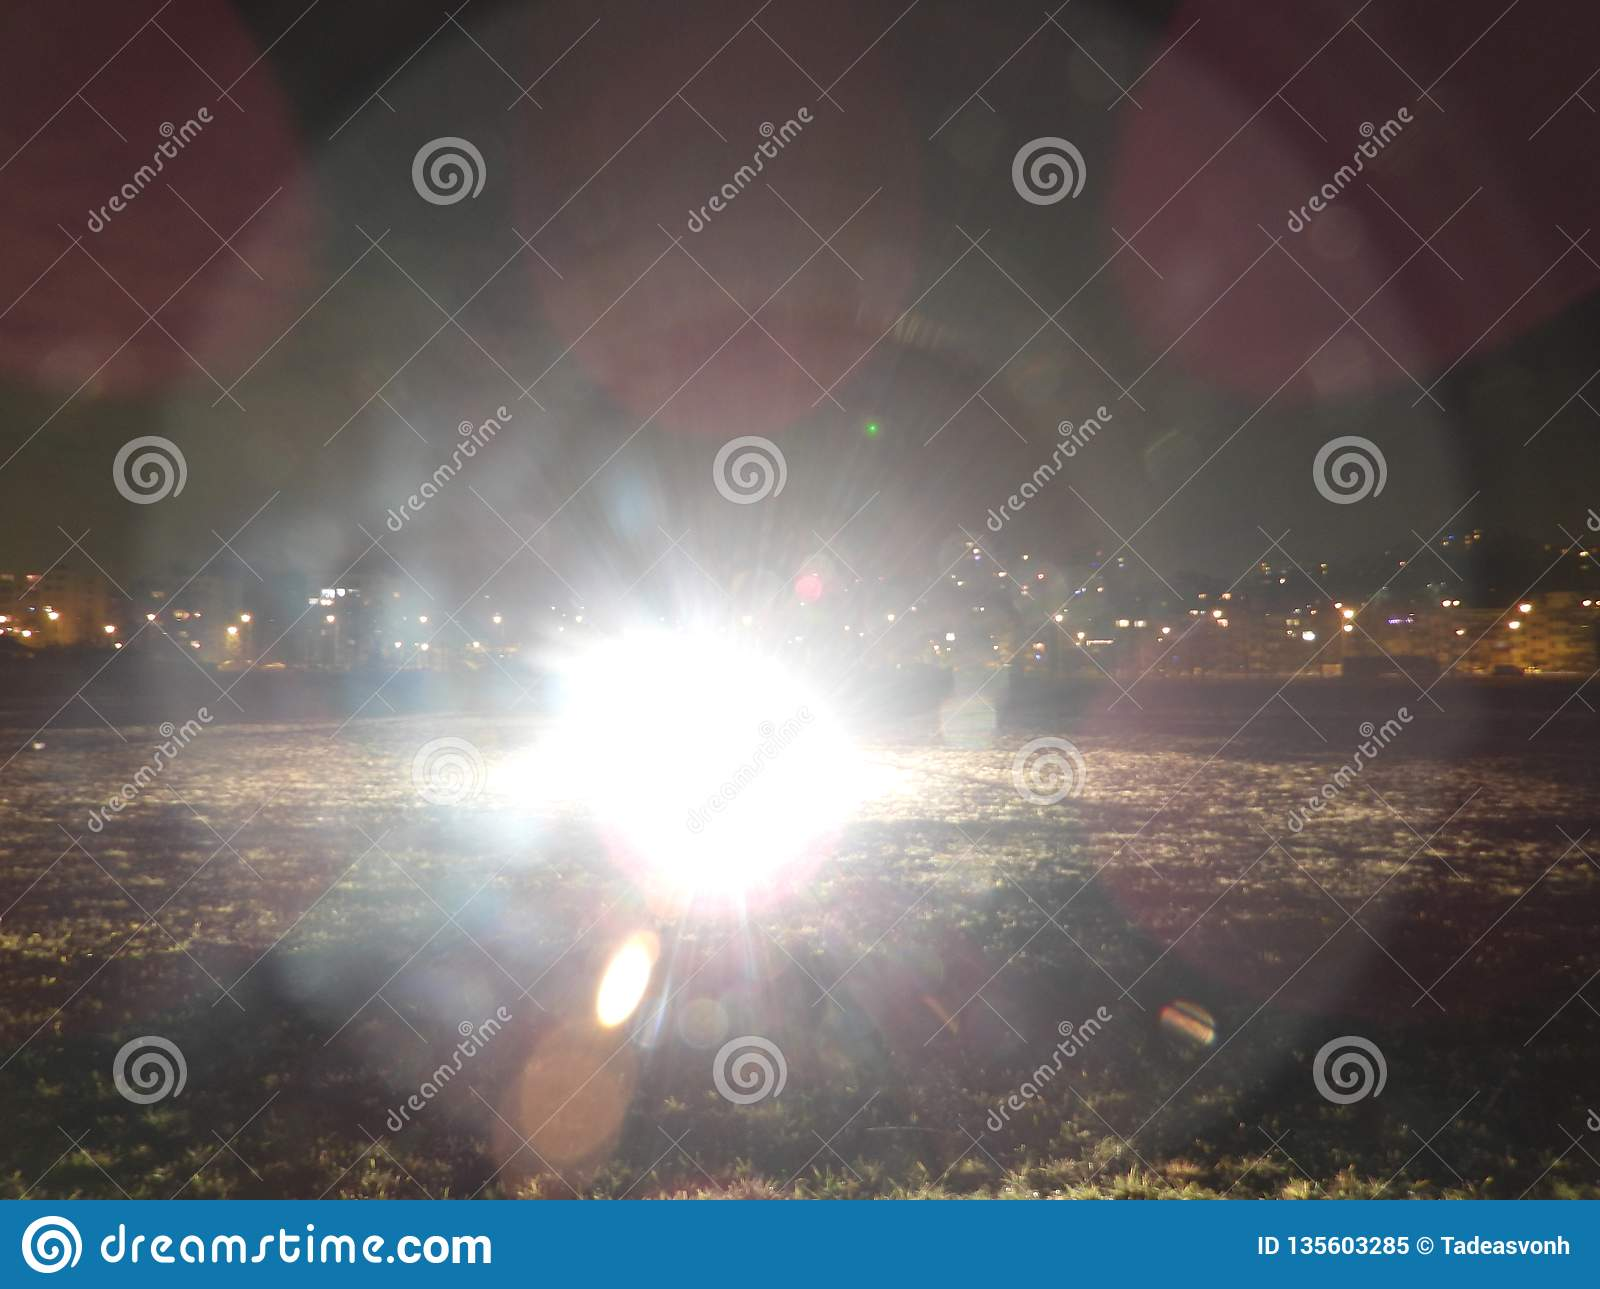 Flash Which Was Not Created By Nature Stock Image - Image of aerial